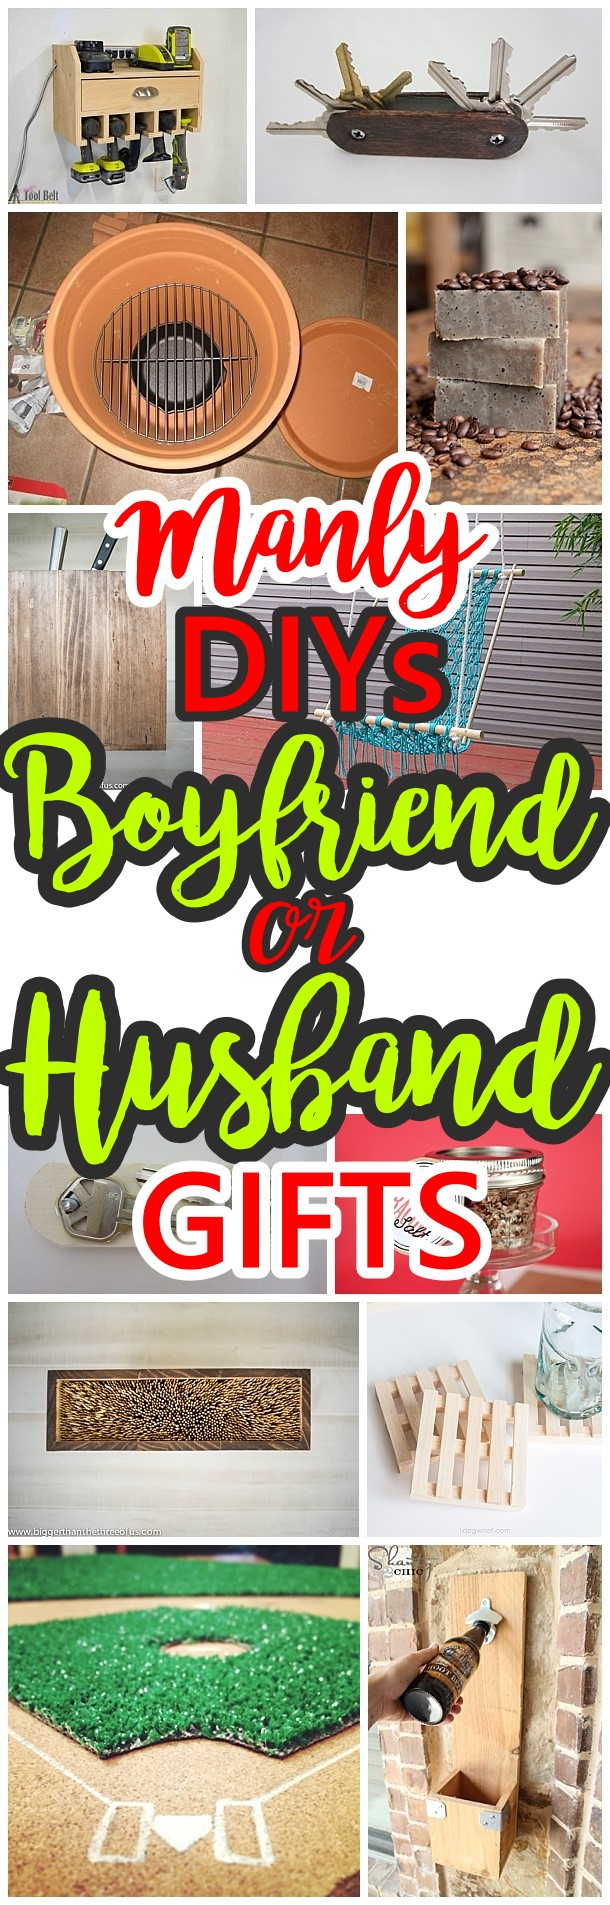 Do it Yourself Manly Gift Ideas for Boyfriends, Husbands Sons, Brothers, Uncles, Cousins or any guy on your gift list! - DIY Christmas, Birthdays, Fathers Day, Graduation Presents or Anytime - Dreaming in DIY #fathersday #diygiftsformen